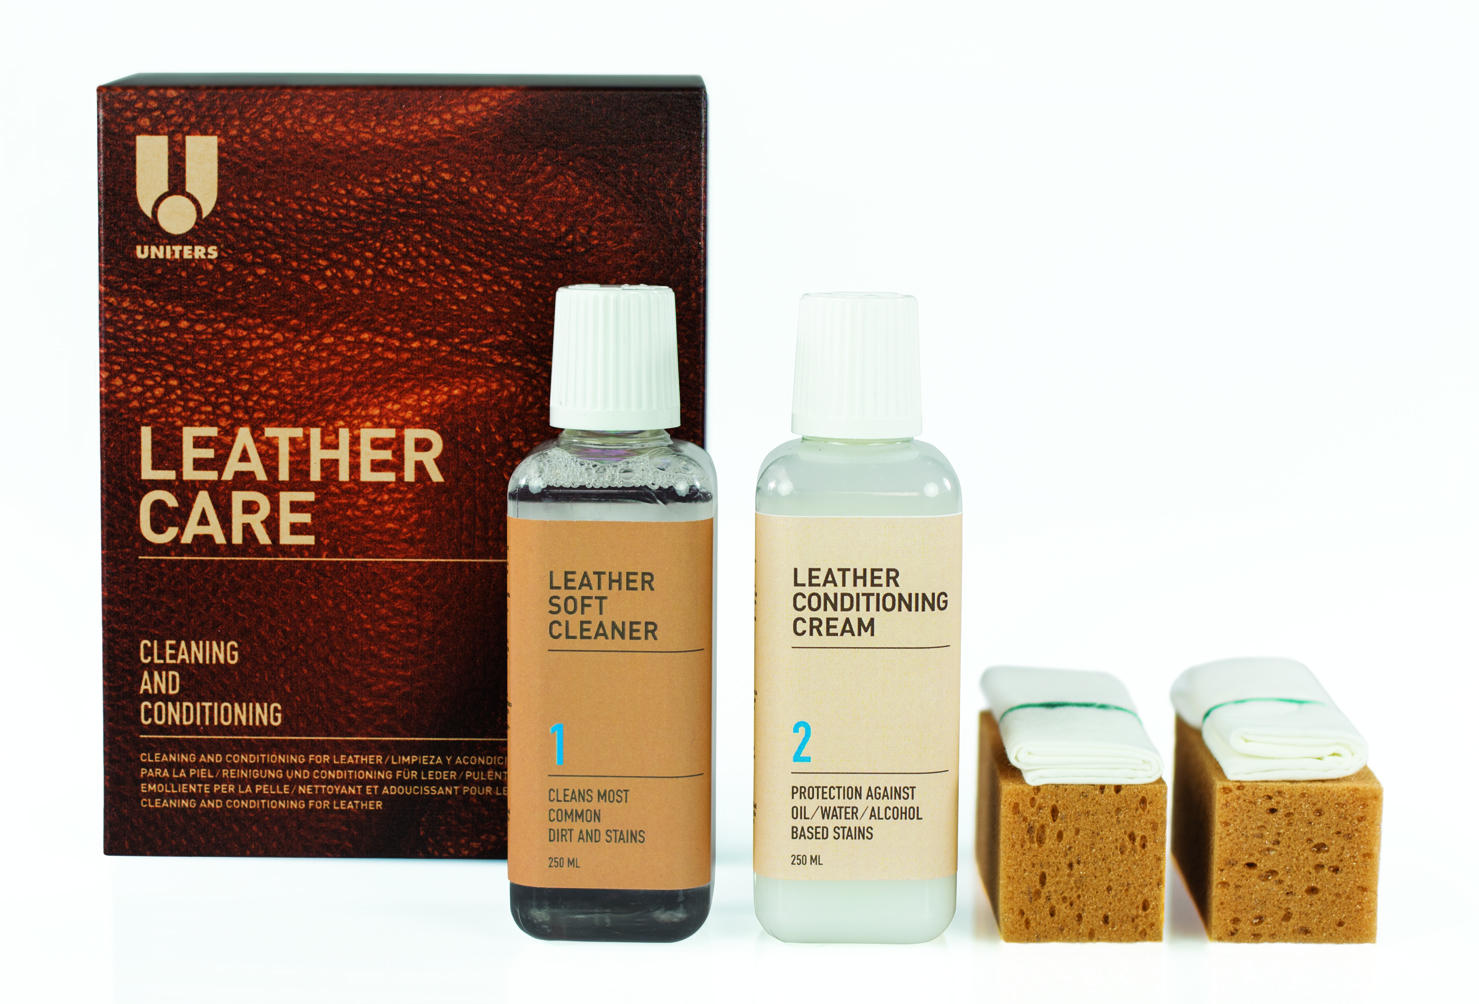 LEATHER CARE KIT MAXI